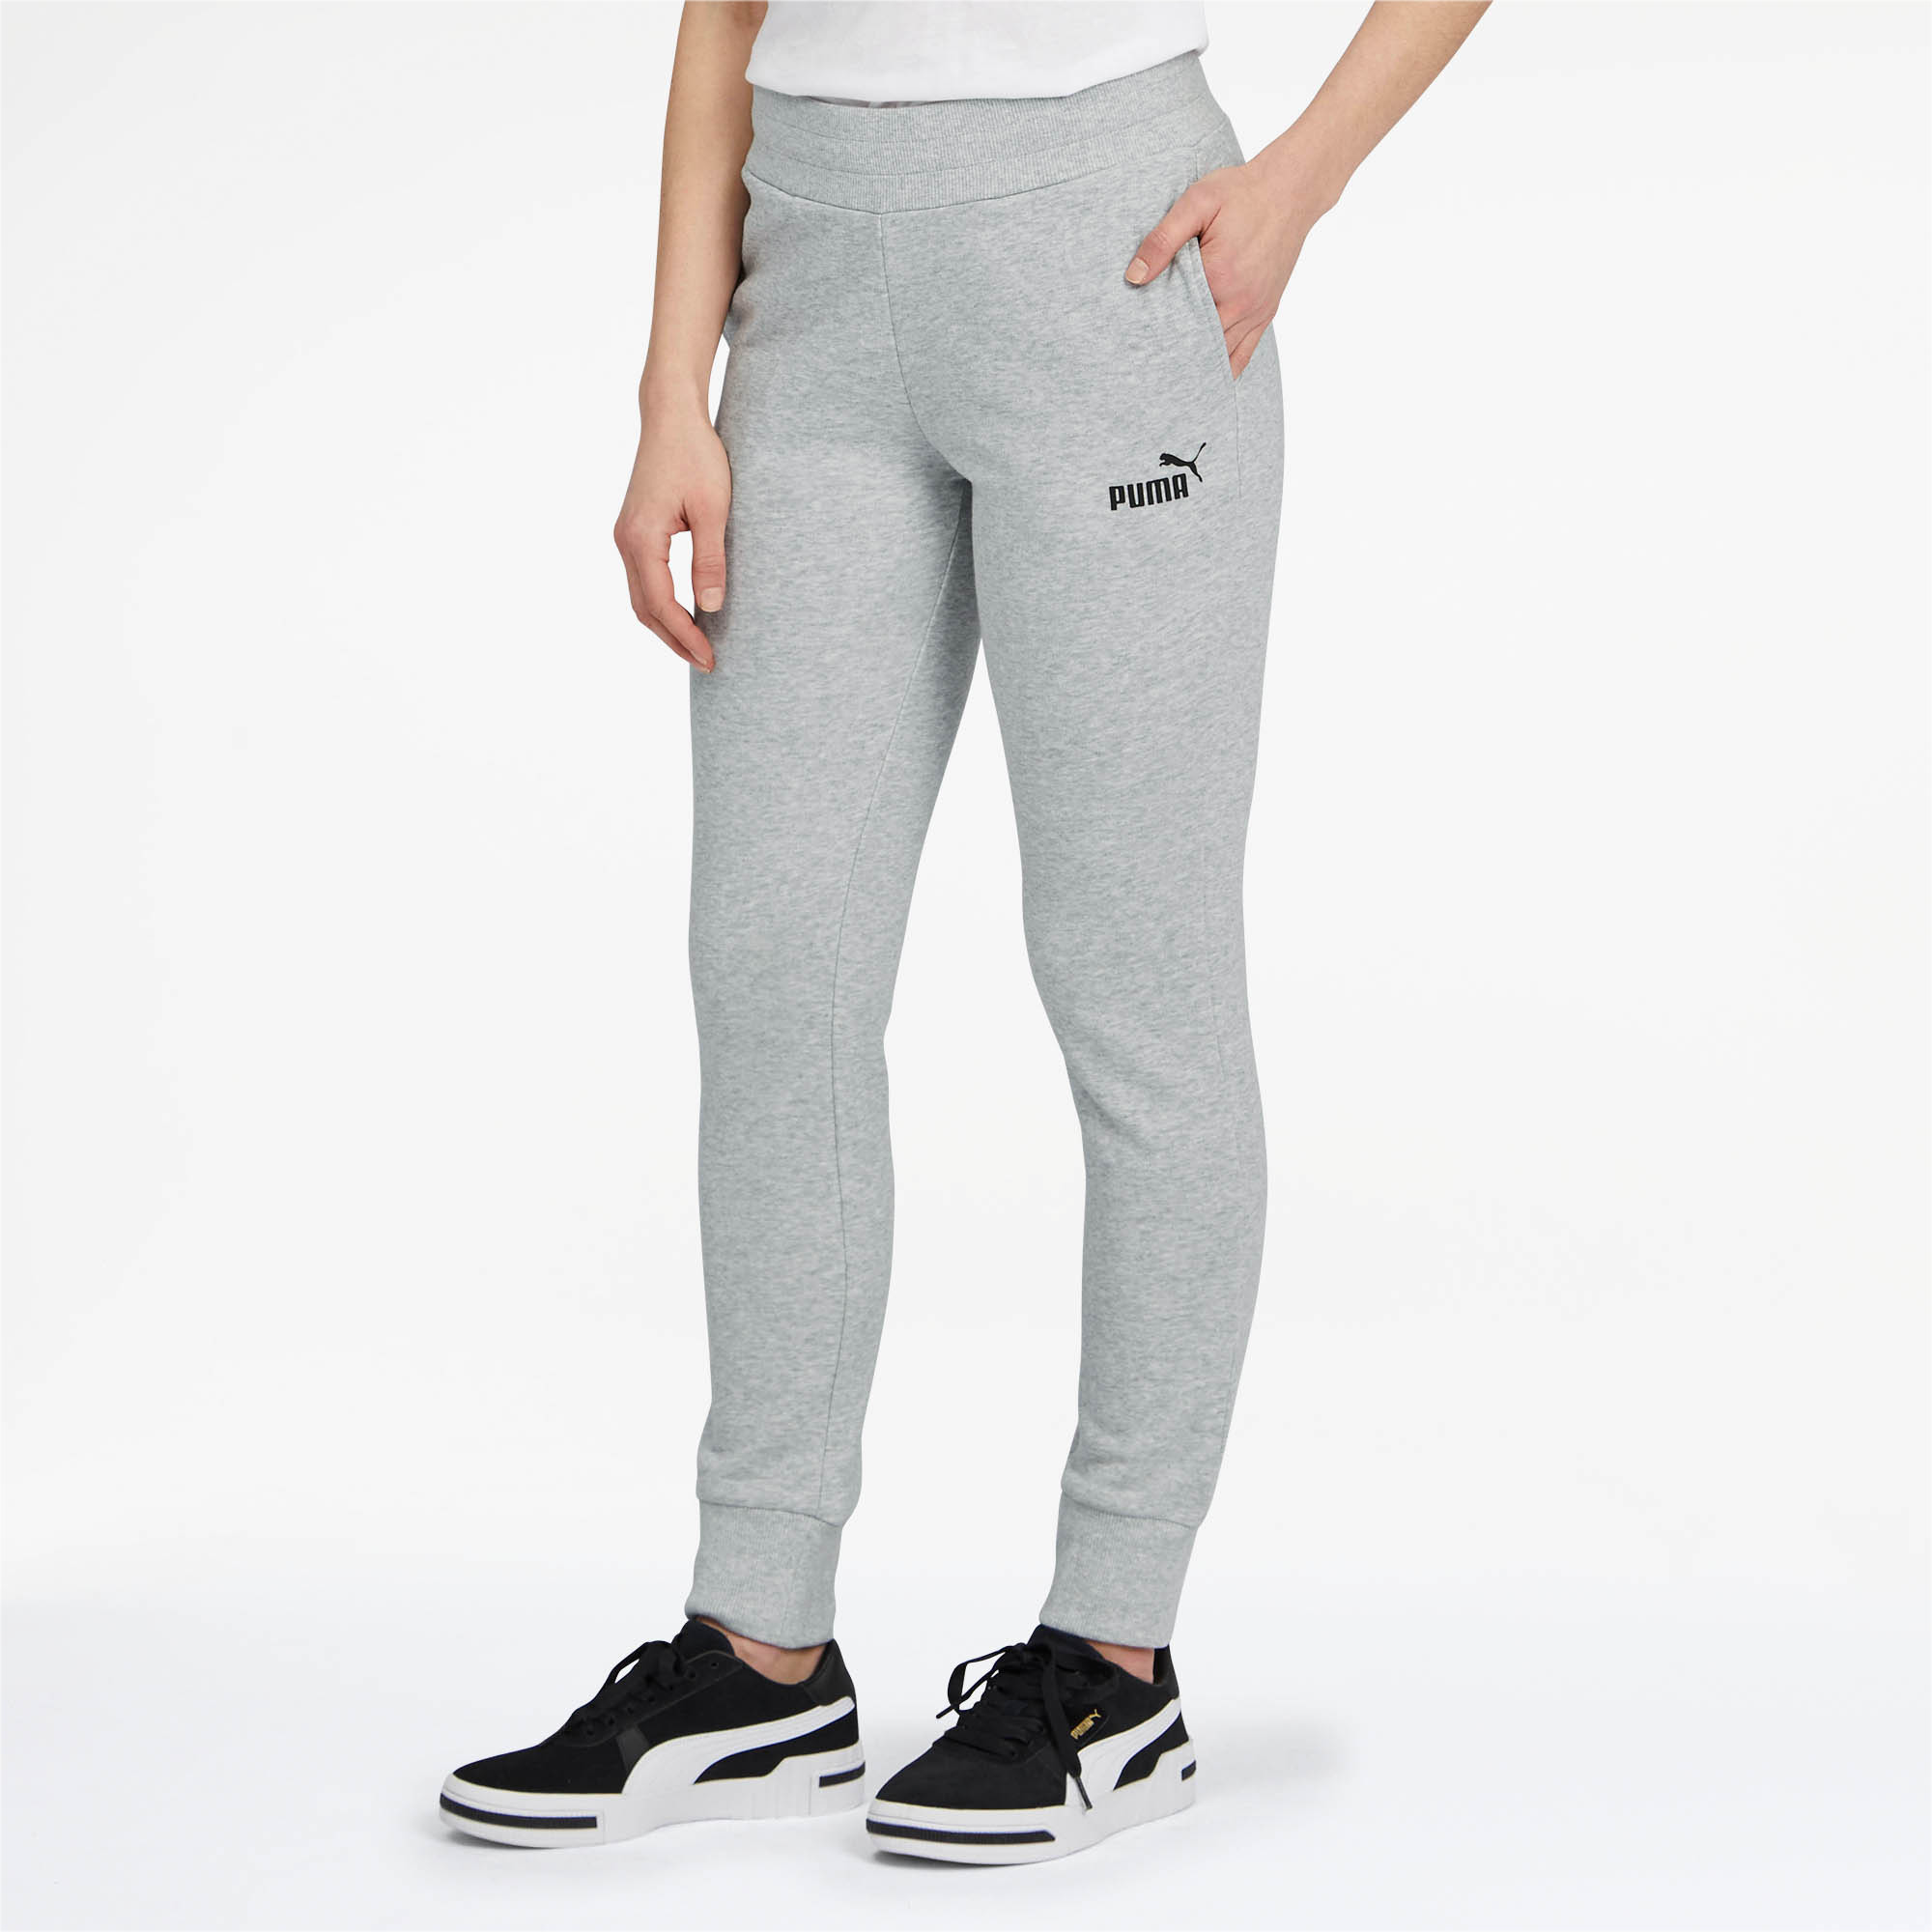 PUMA-Essentials-Women-039-s-Sweatpants-Women-Knitted-Pants-Basics thumbnail 7